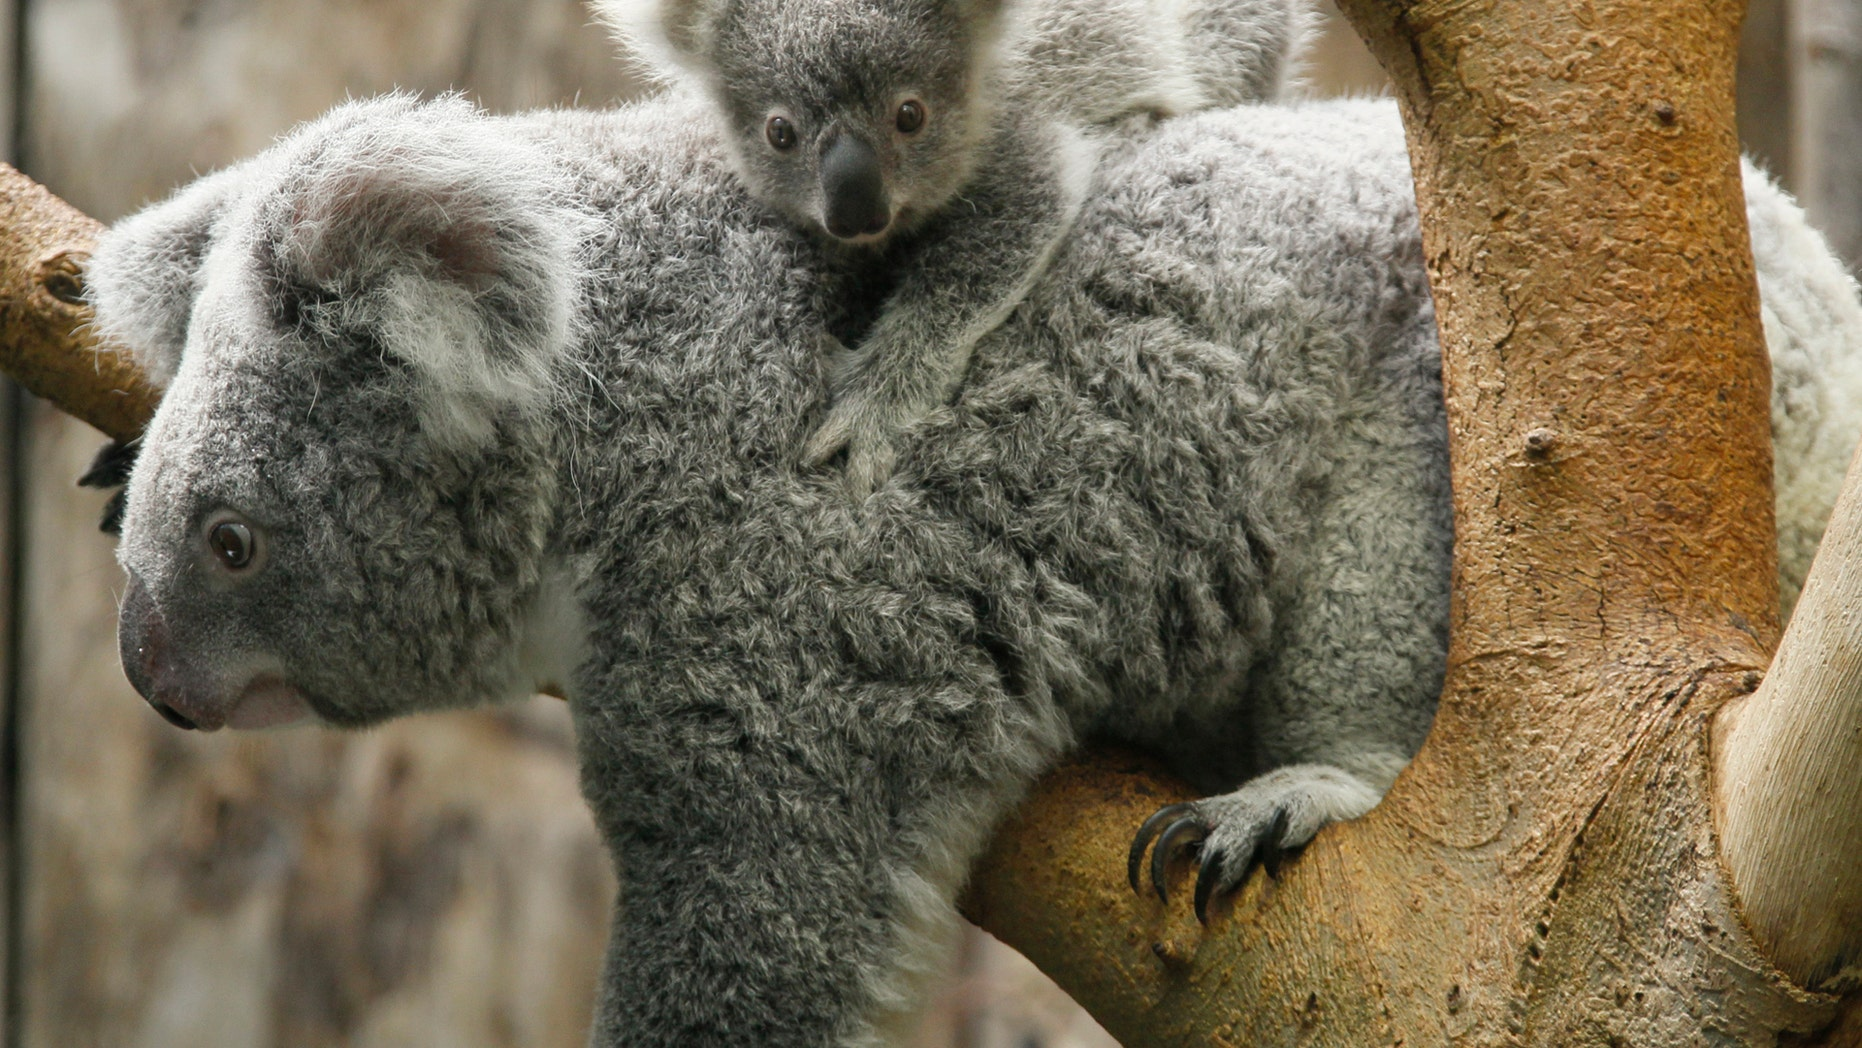 File photo: A koala joey hangs on its mother Goonderrah, the Aboriginal name for fighter, following a weighing procedure at the zoo in the western German city of Duisburg June 11, 2010. (REUTERS/Wolfgang Rattay)